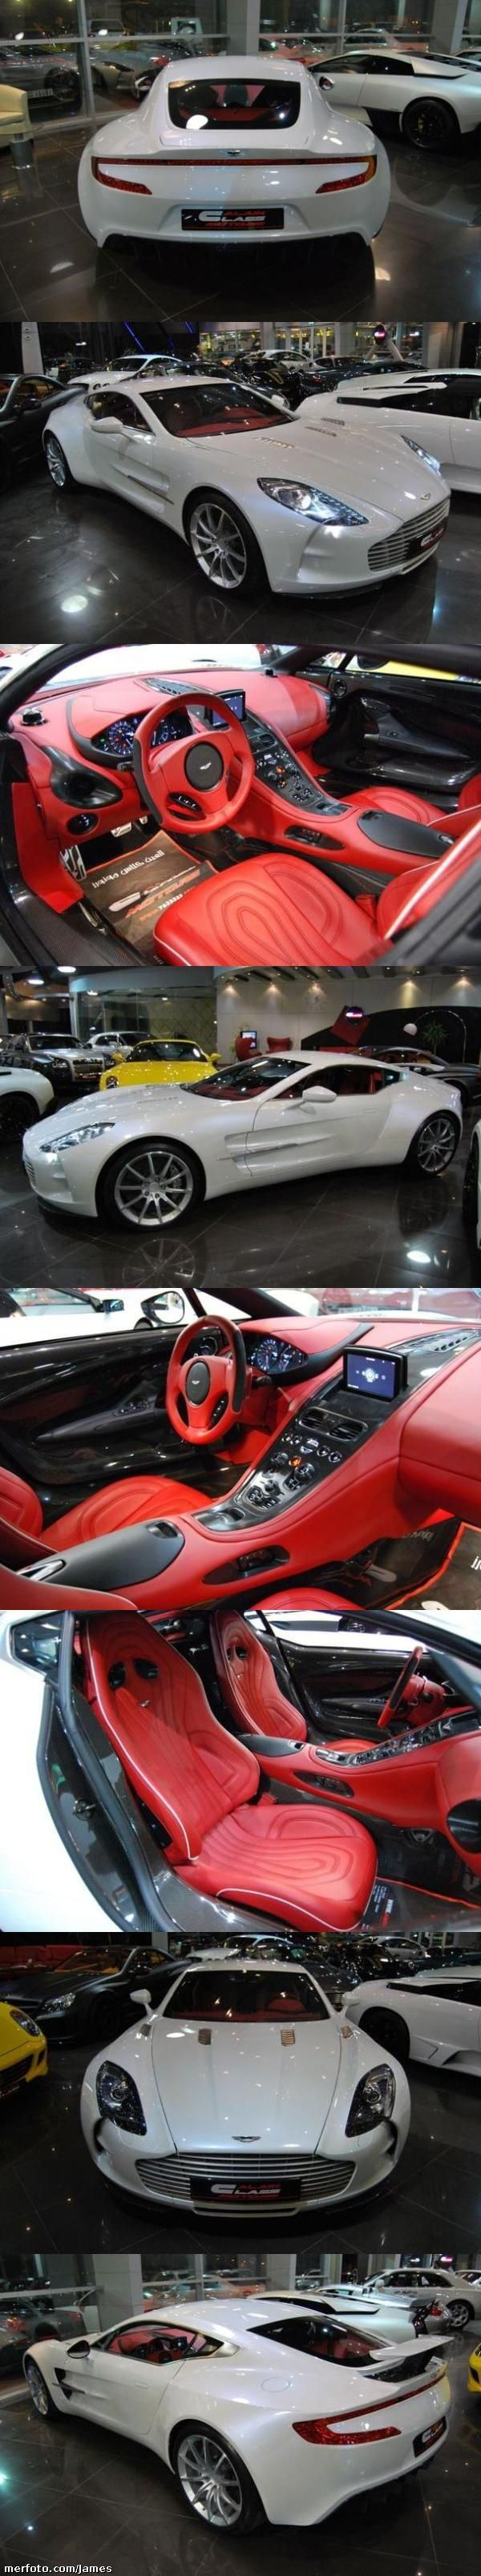 Aston Martin One-77 exotic888imports.com  We BUY! We SELL! We TRADE! Call 204 381 1587  Follow! RE TWEET! SEND FRIEND request! THANKS!